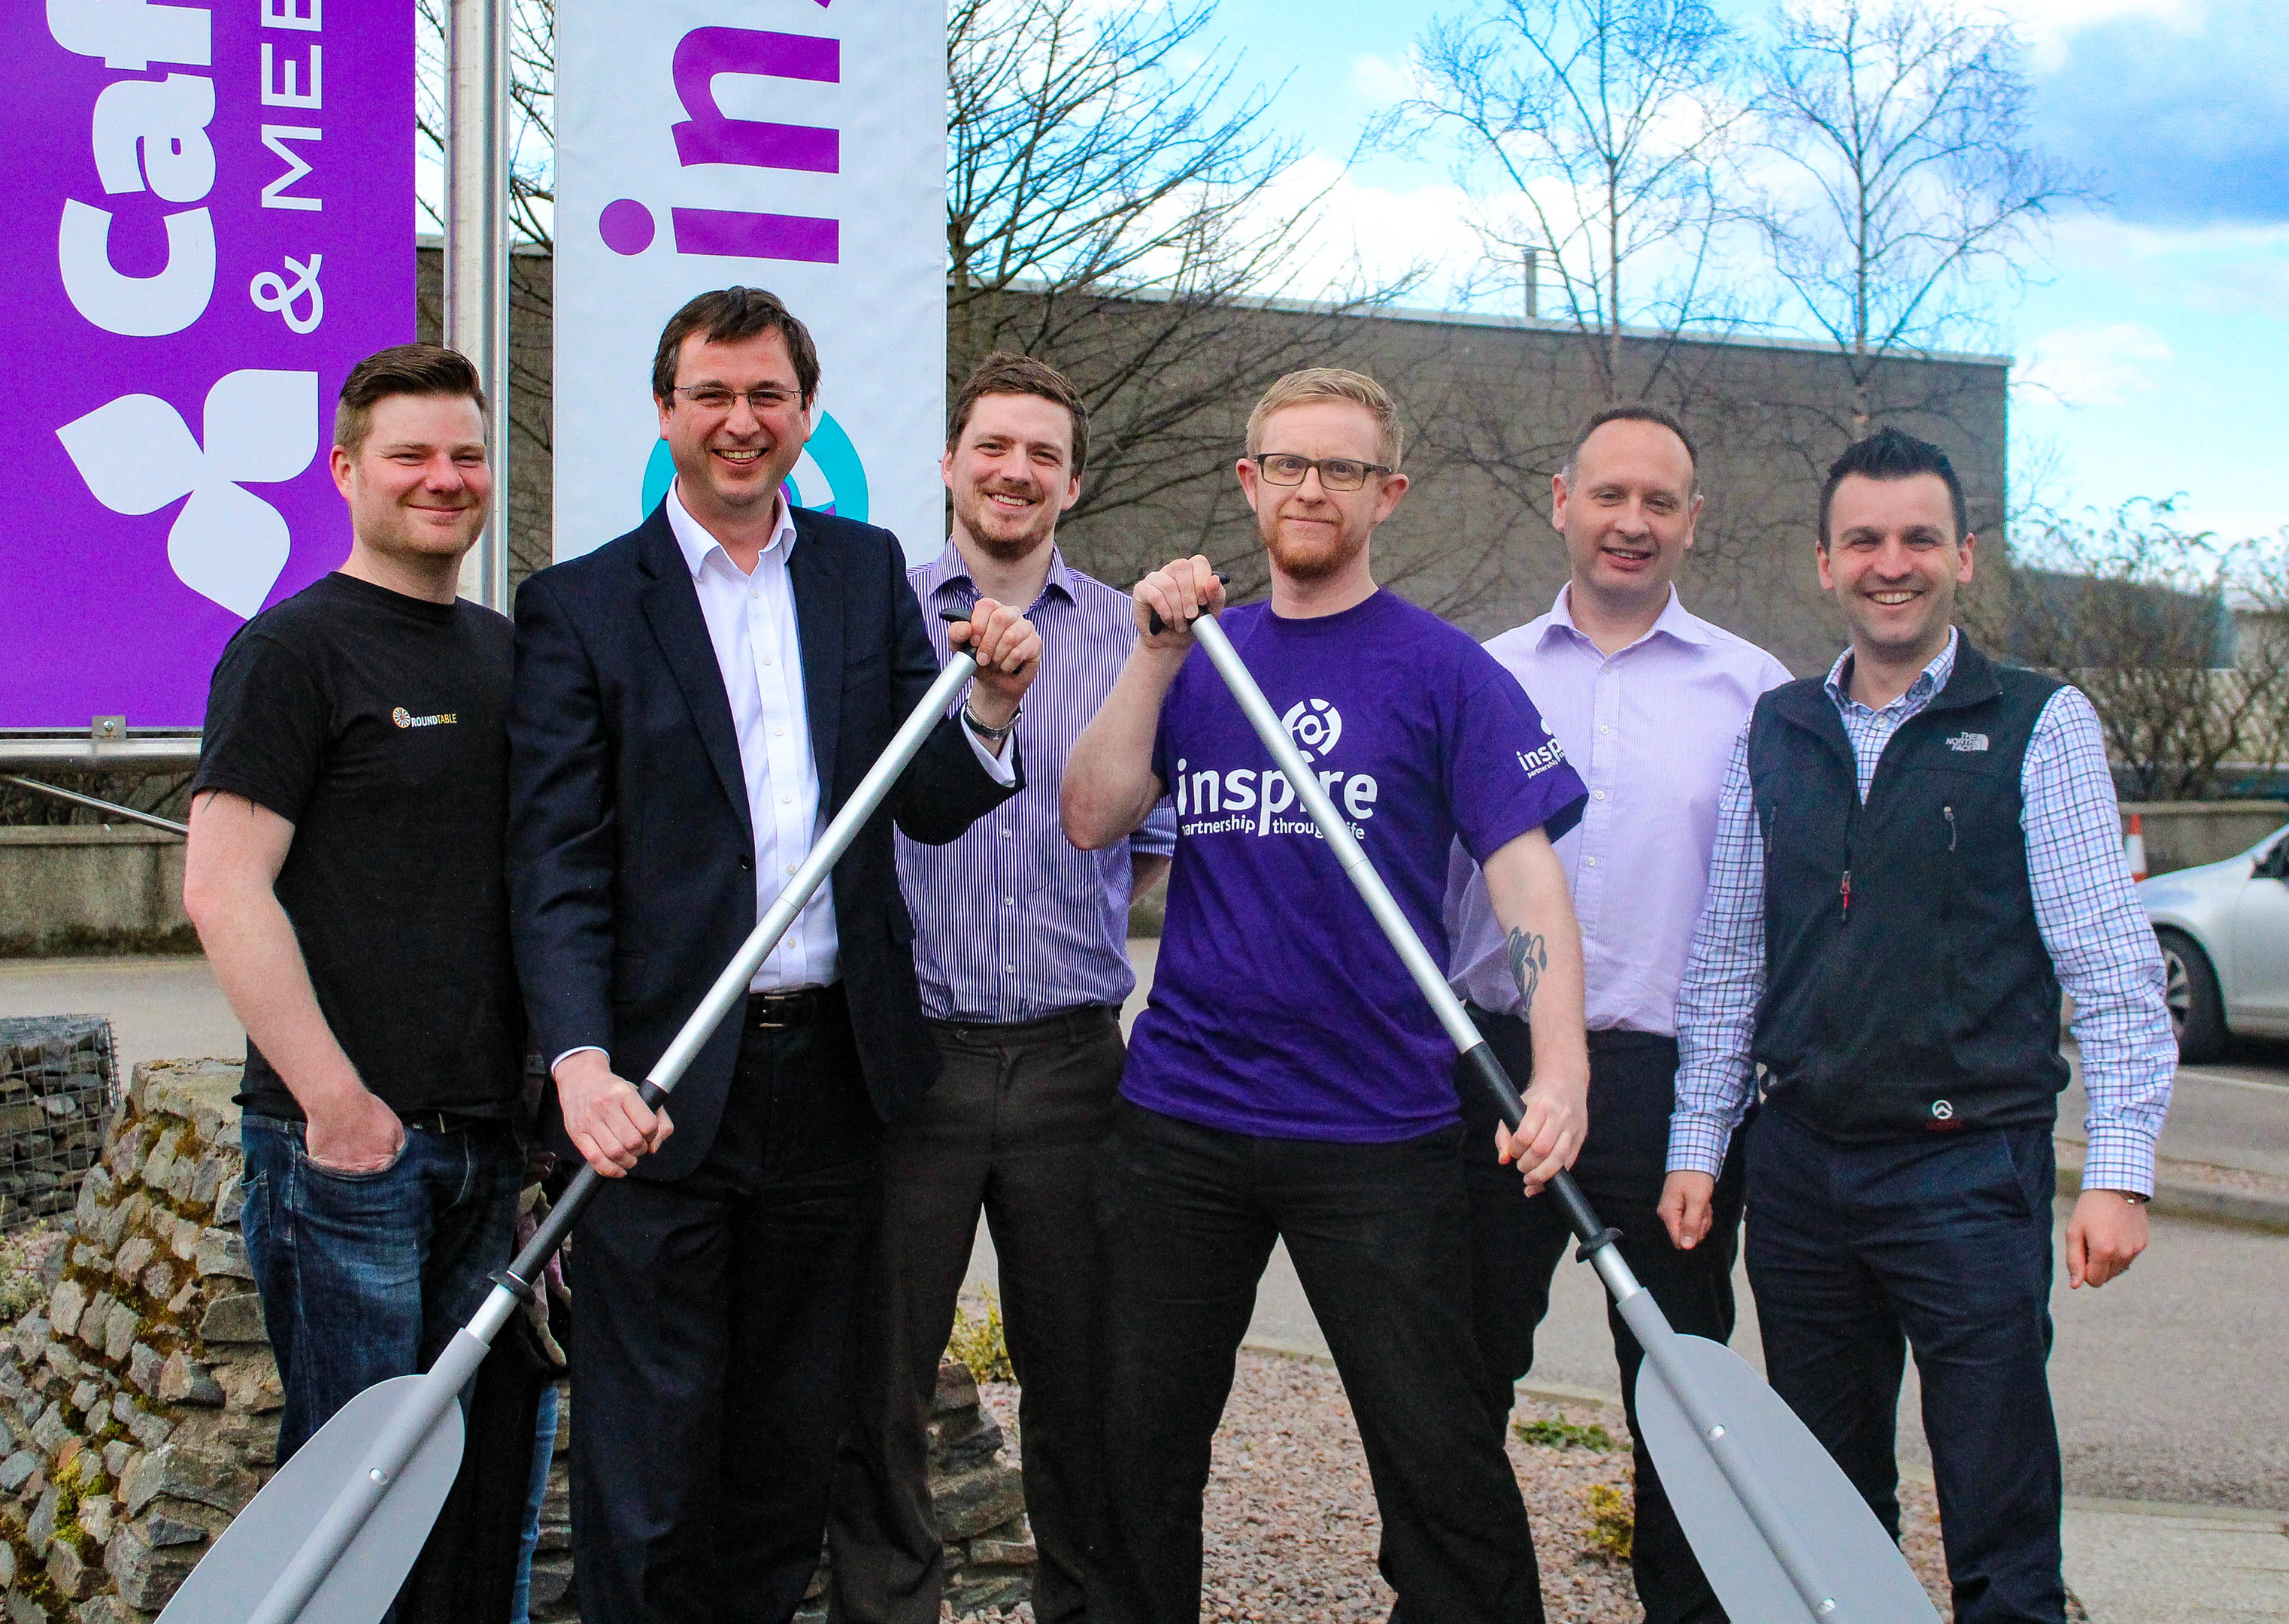 Inspire's Business Development Manager Duncan Peter (purple t-shirt) and Gregor Scott from Banchory & District Round Table launching the event along with other Round Table members